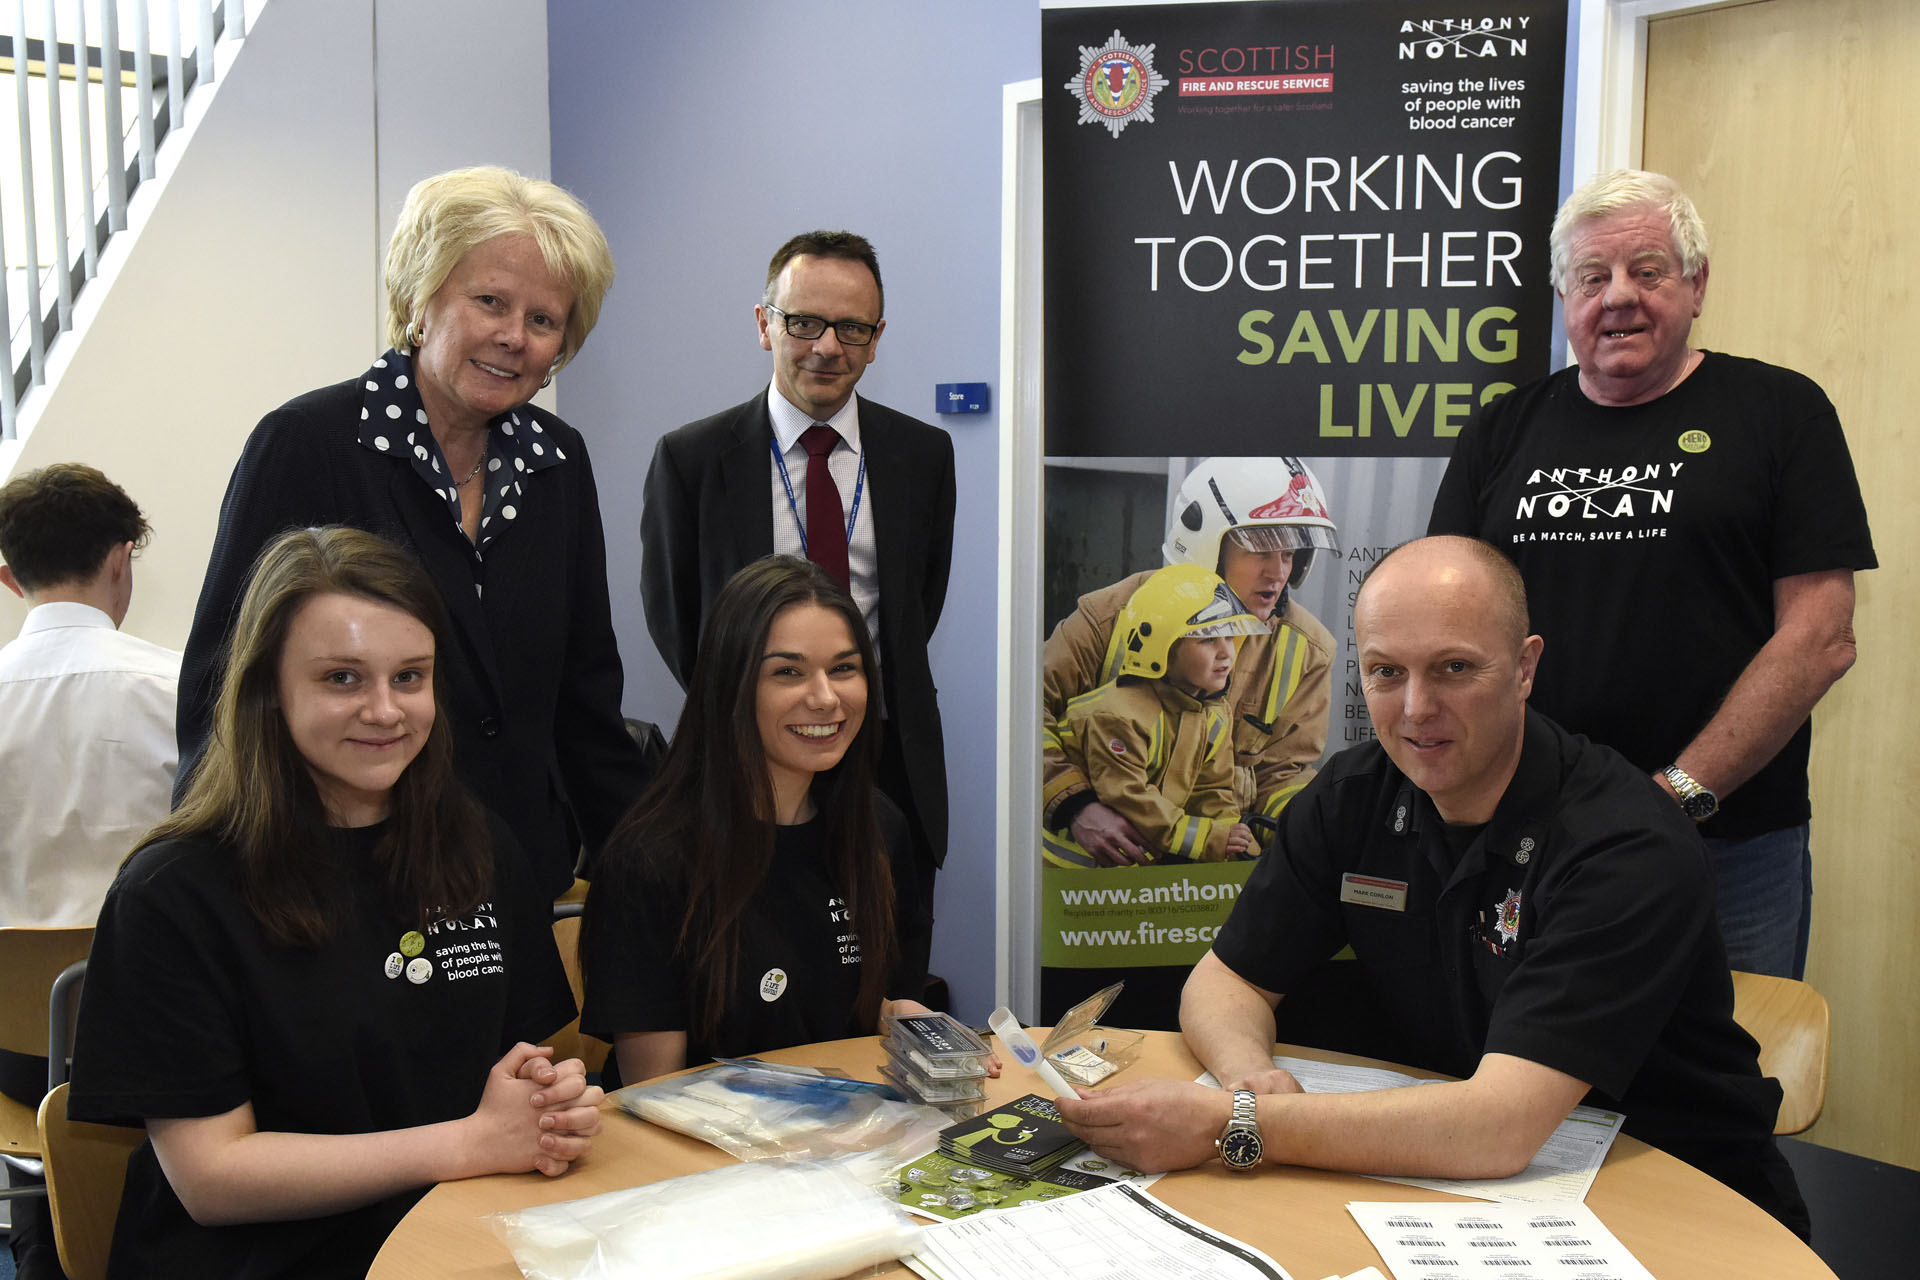 Firefighters recruit 95 potential lifesavers from Kilmarnock school